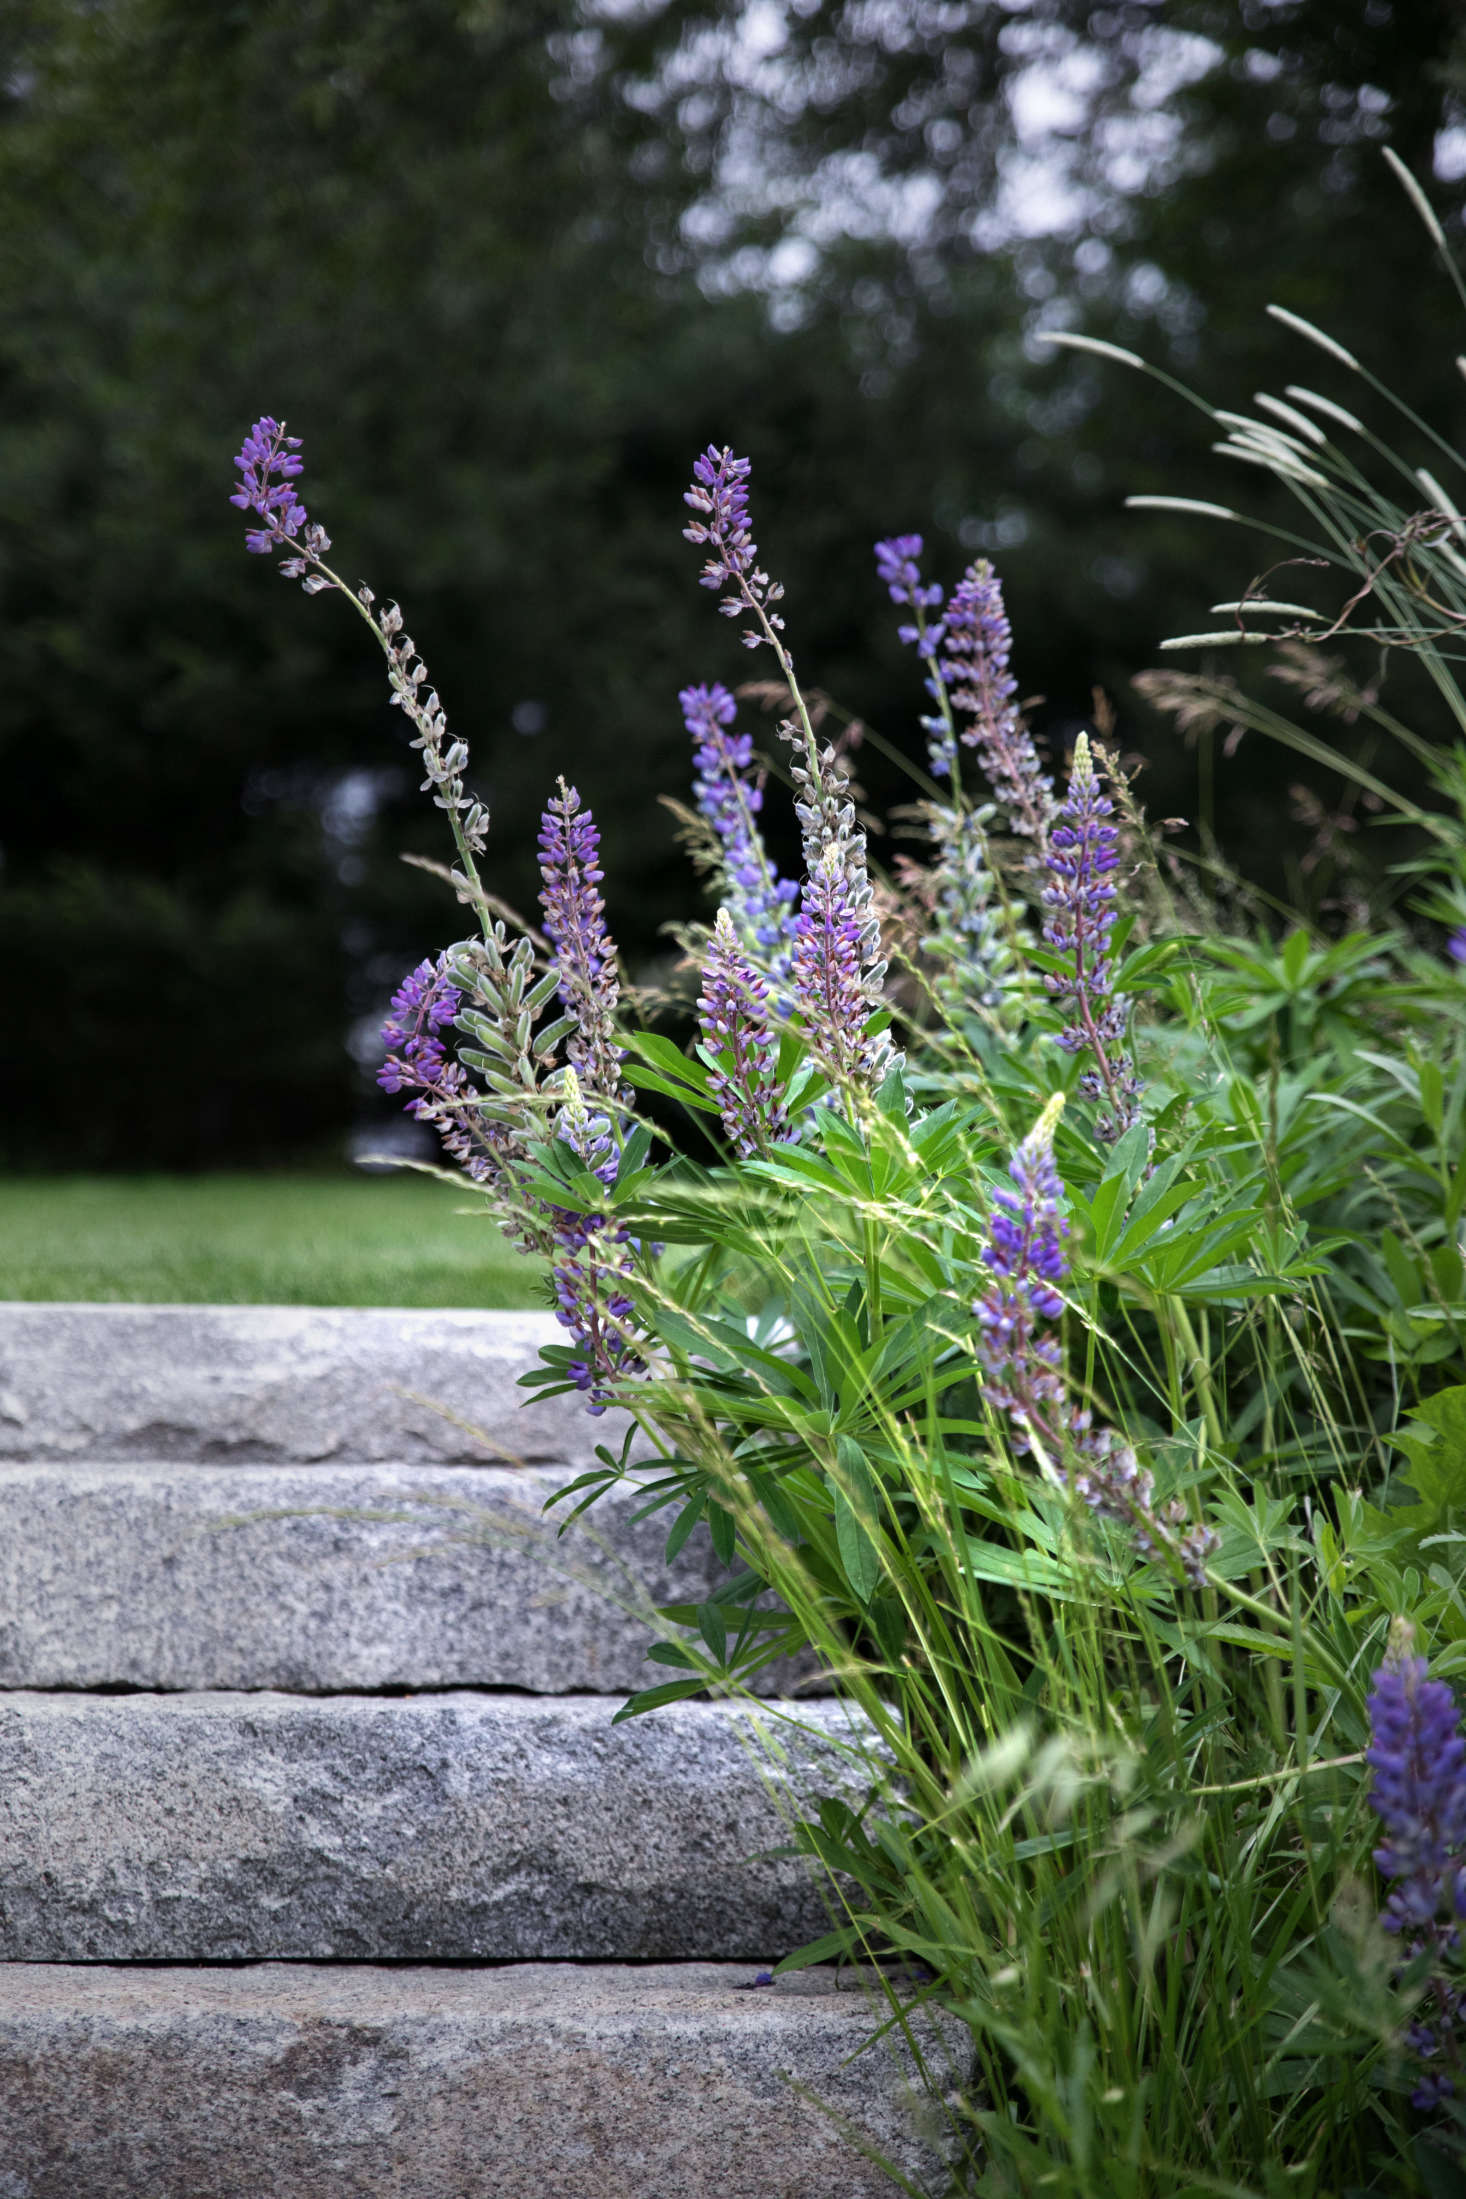 More lupine and grass create a soft border along the granite steps.